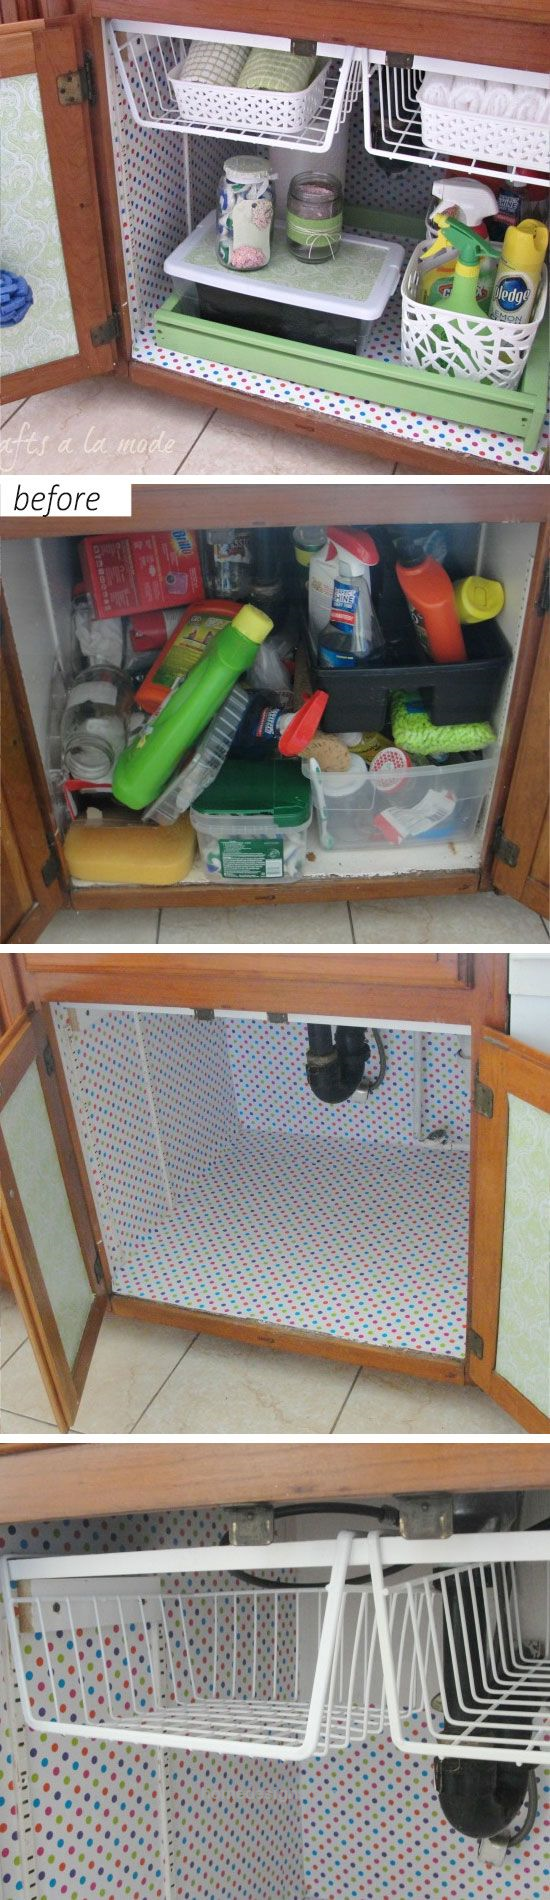 19 Easy Storage Ideas for Small Spaces – Declutter Your Home in No ...